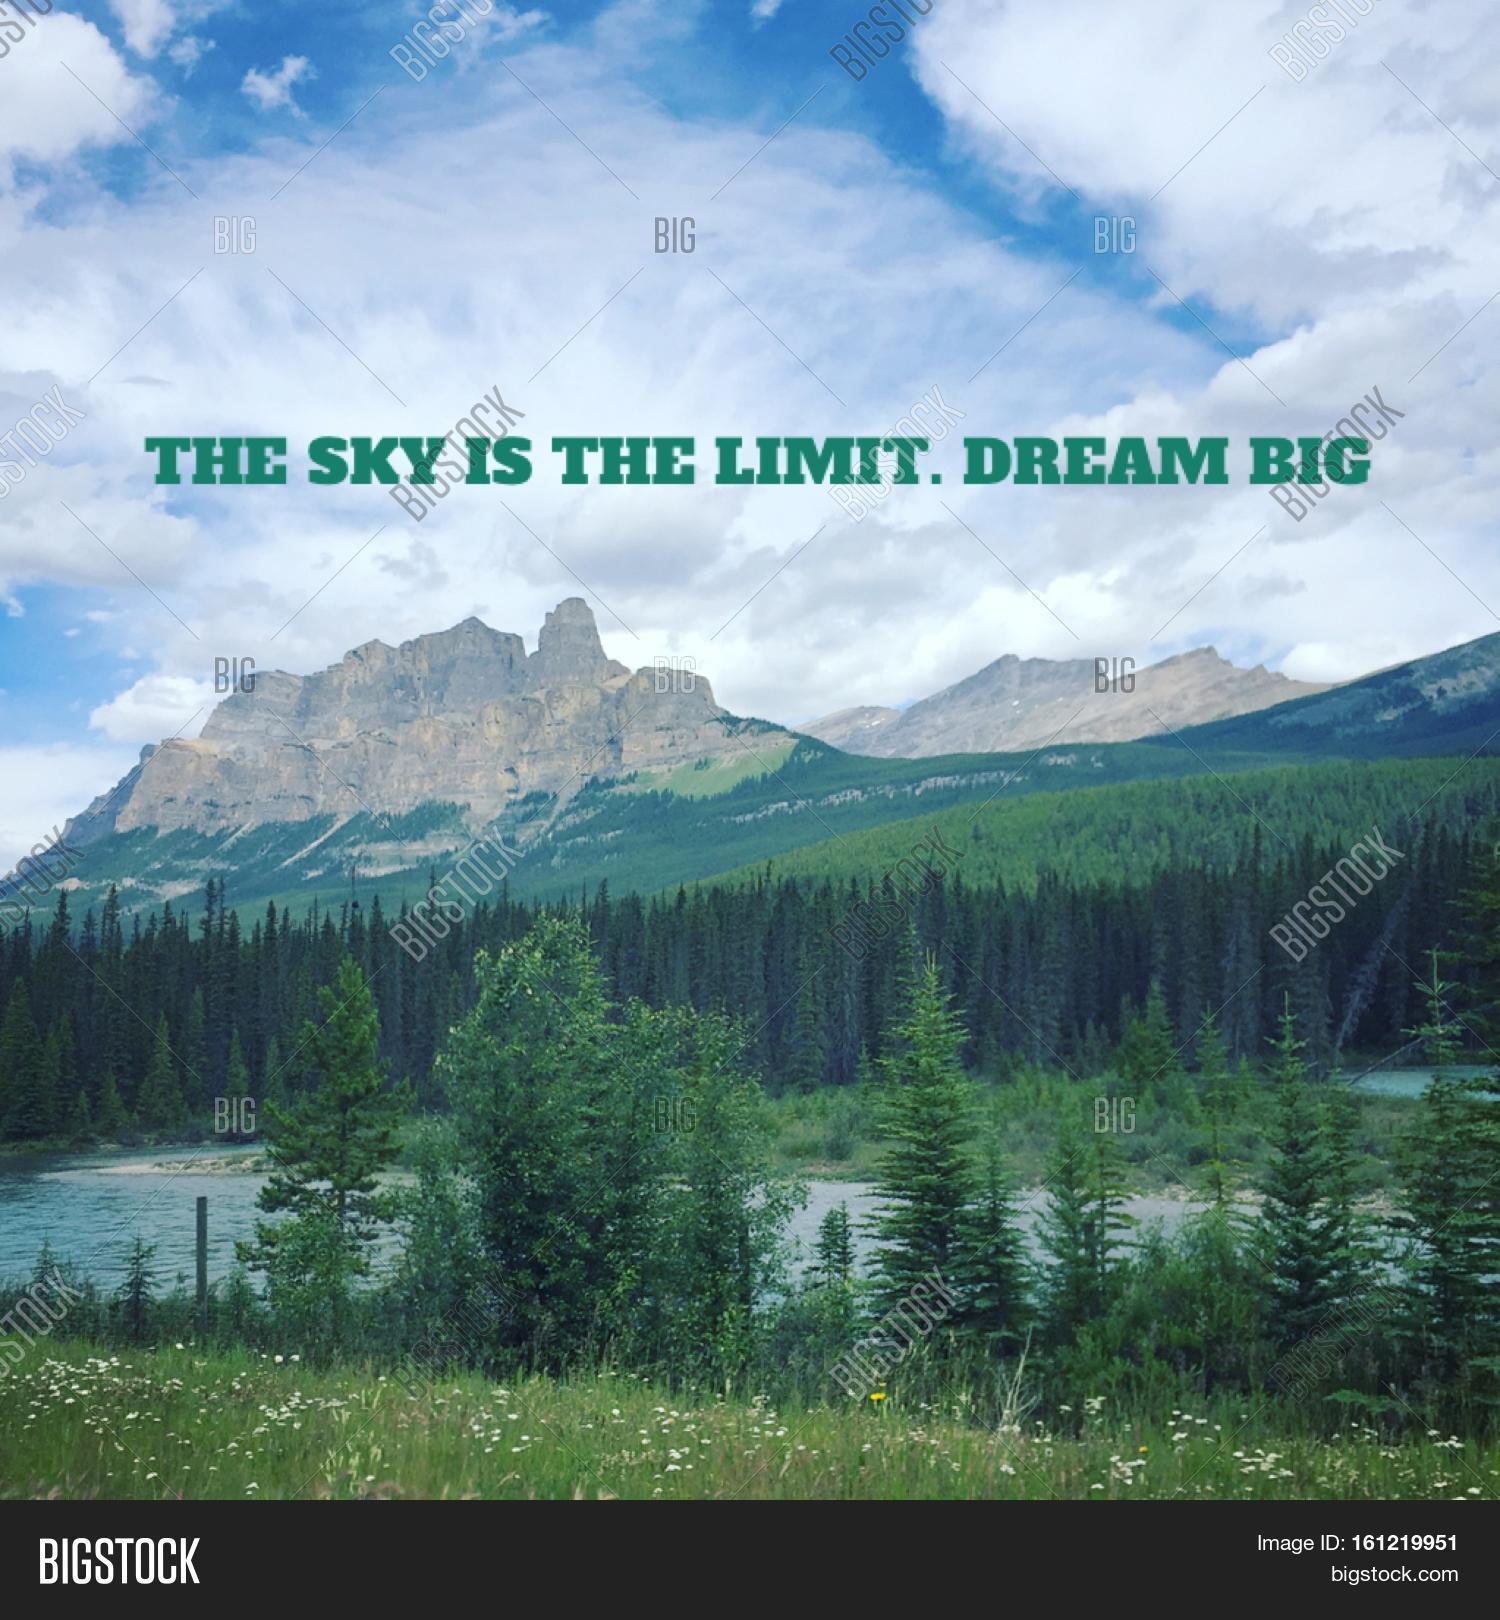 Scenic quotes daily inspirational quotations and sayings on - The Sky Is The Limit Dream Big Inspirational Quote On Beautiful Scenic Summer Mountain